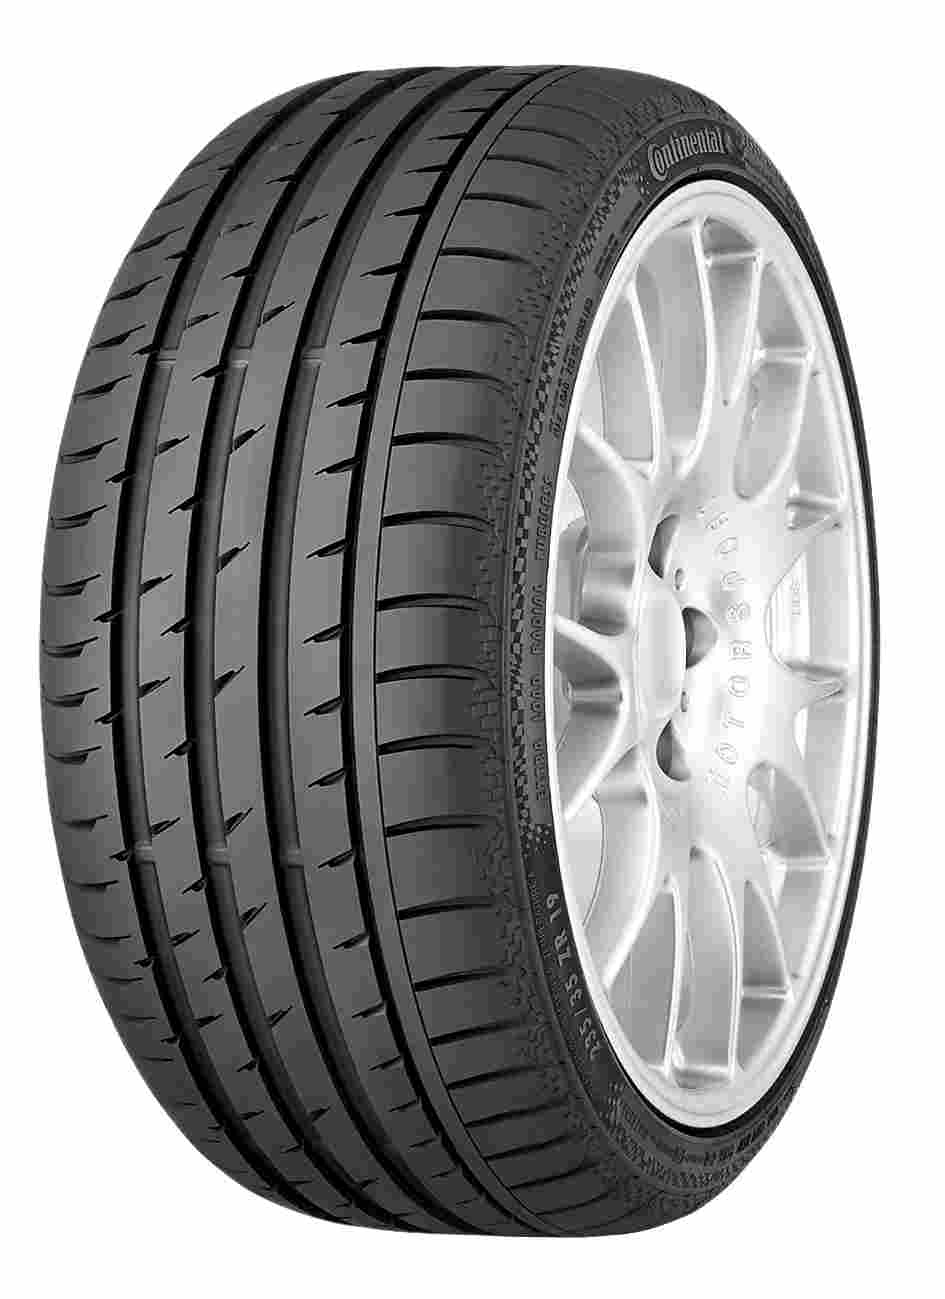 Continental ContiSportContact 3 RFT 245/45 R18